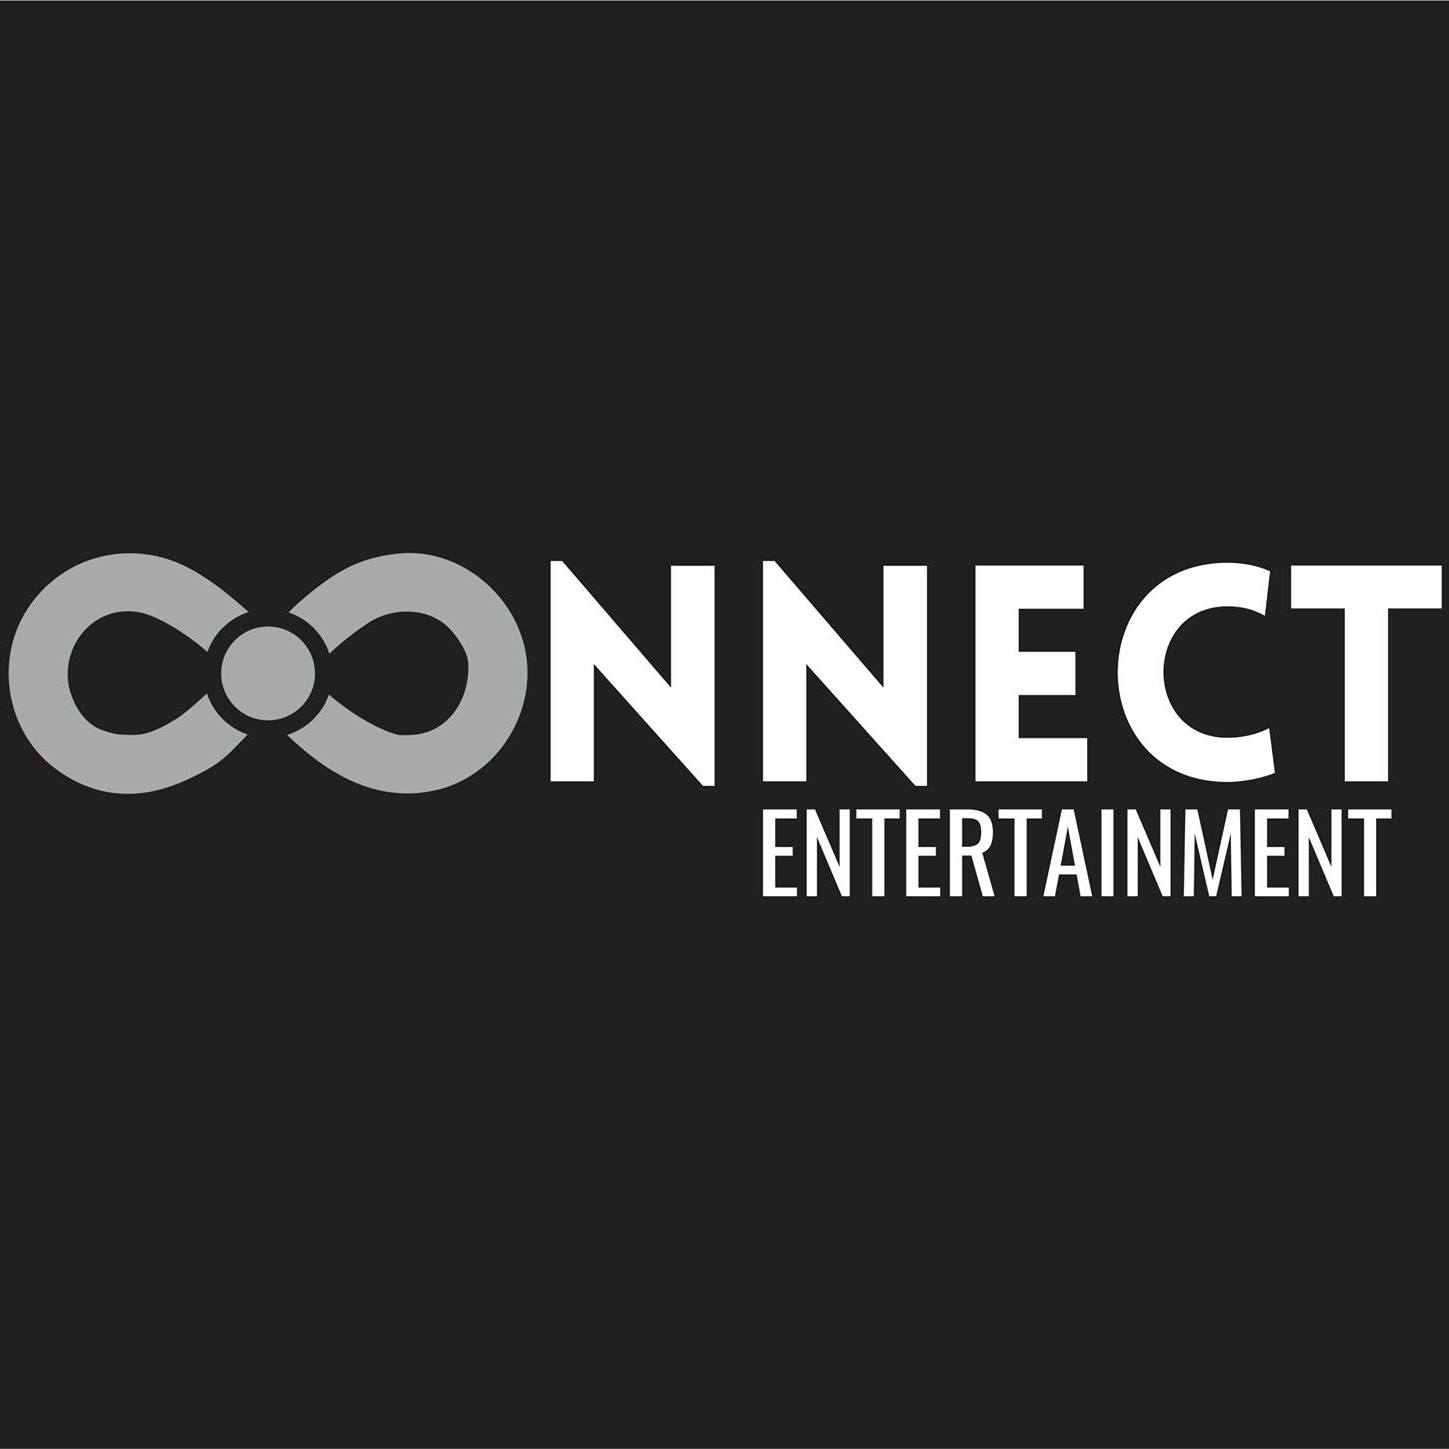 Connect Entertainment